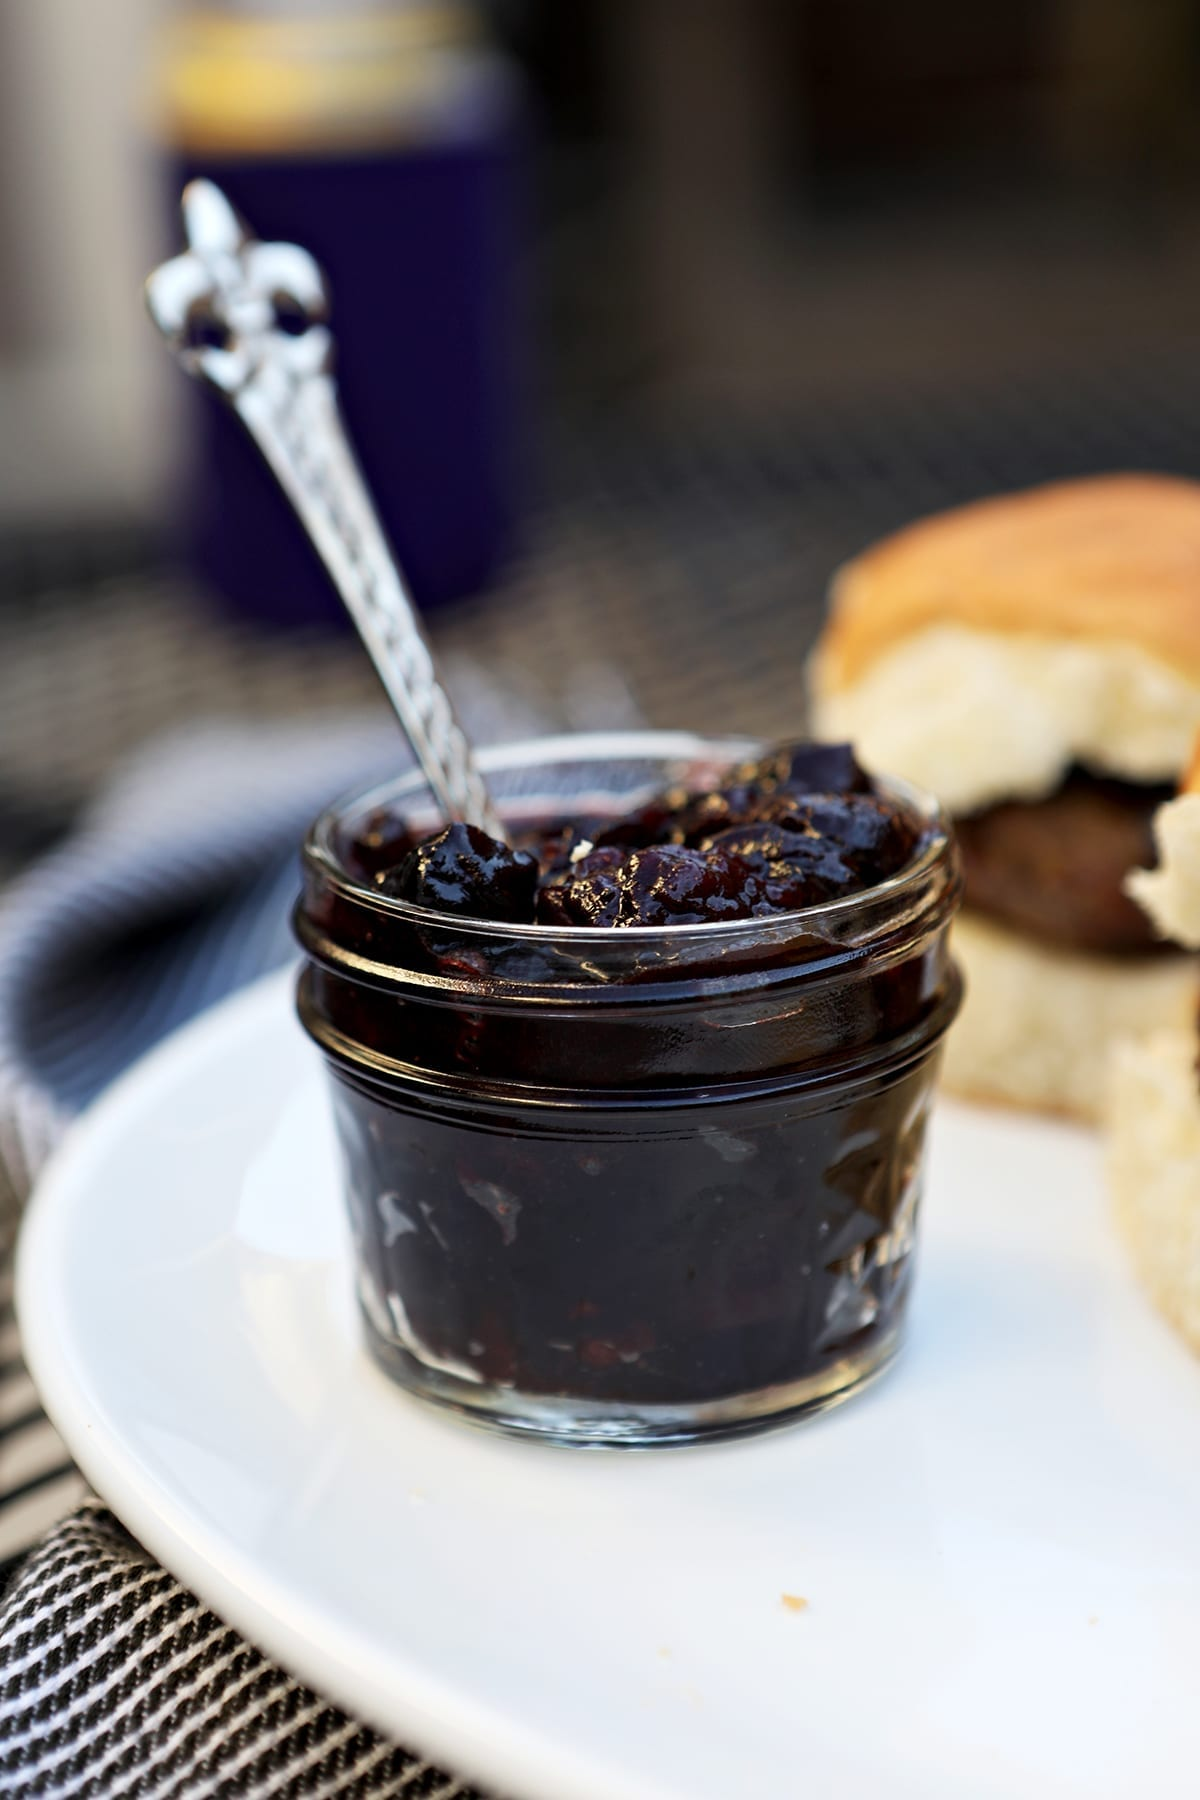 A small jar of compote sits on a white platter next to sliders